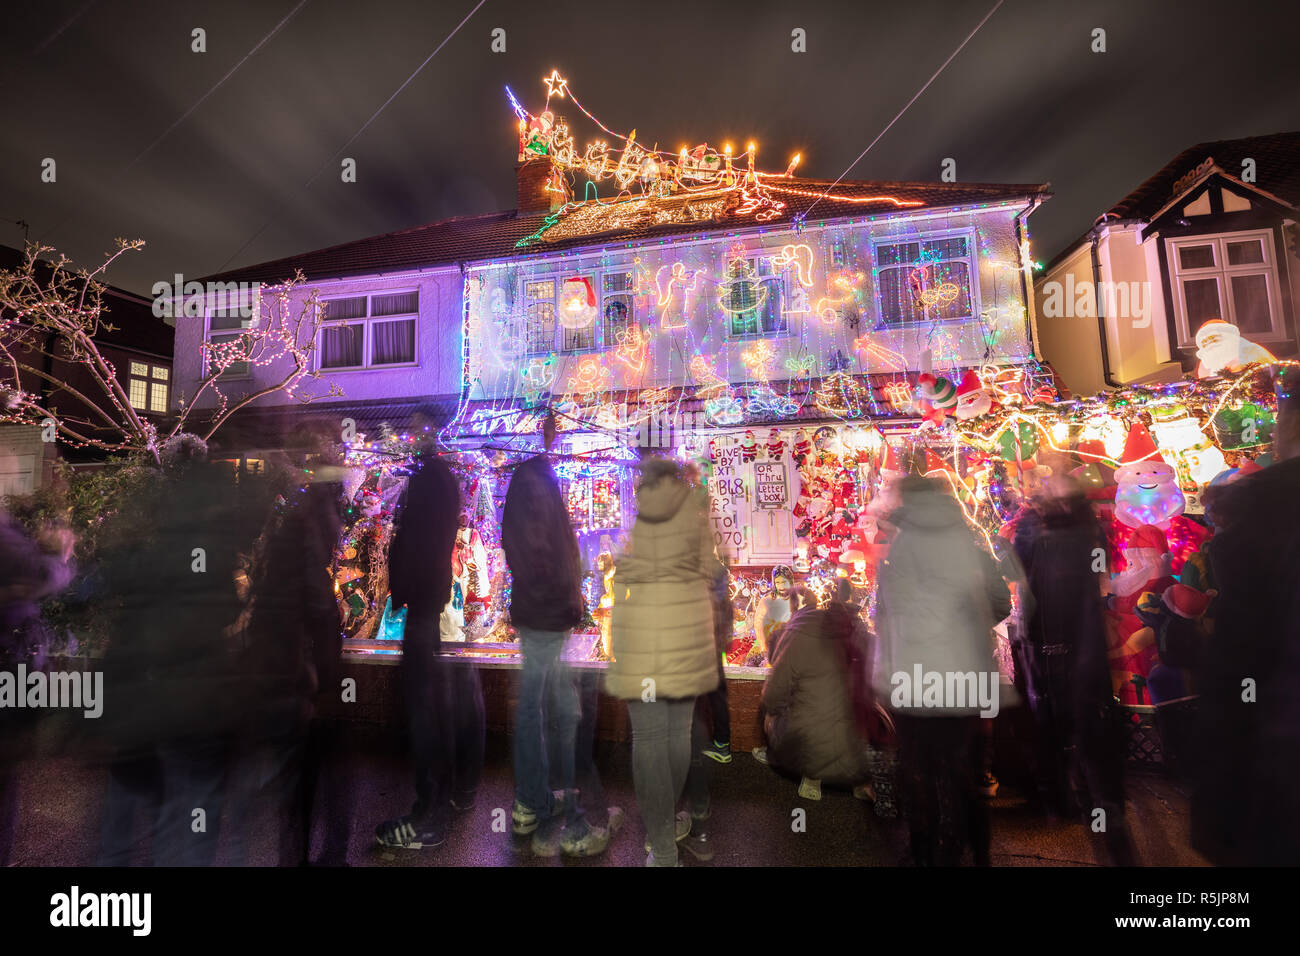 London, UK  1st Dec, 2018  Striking Christmas house lights display